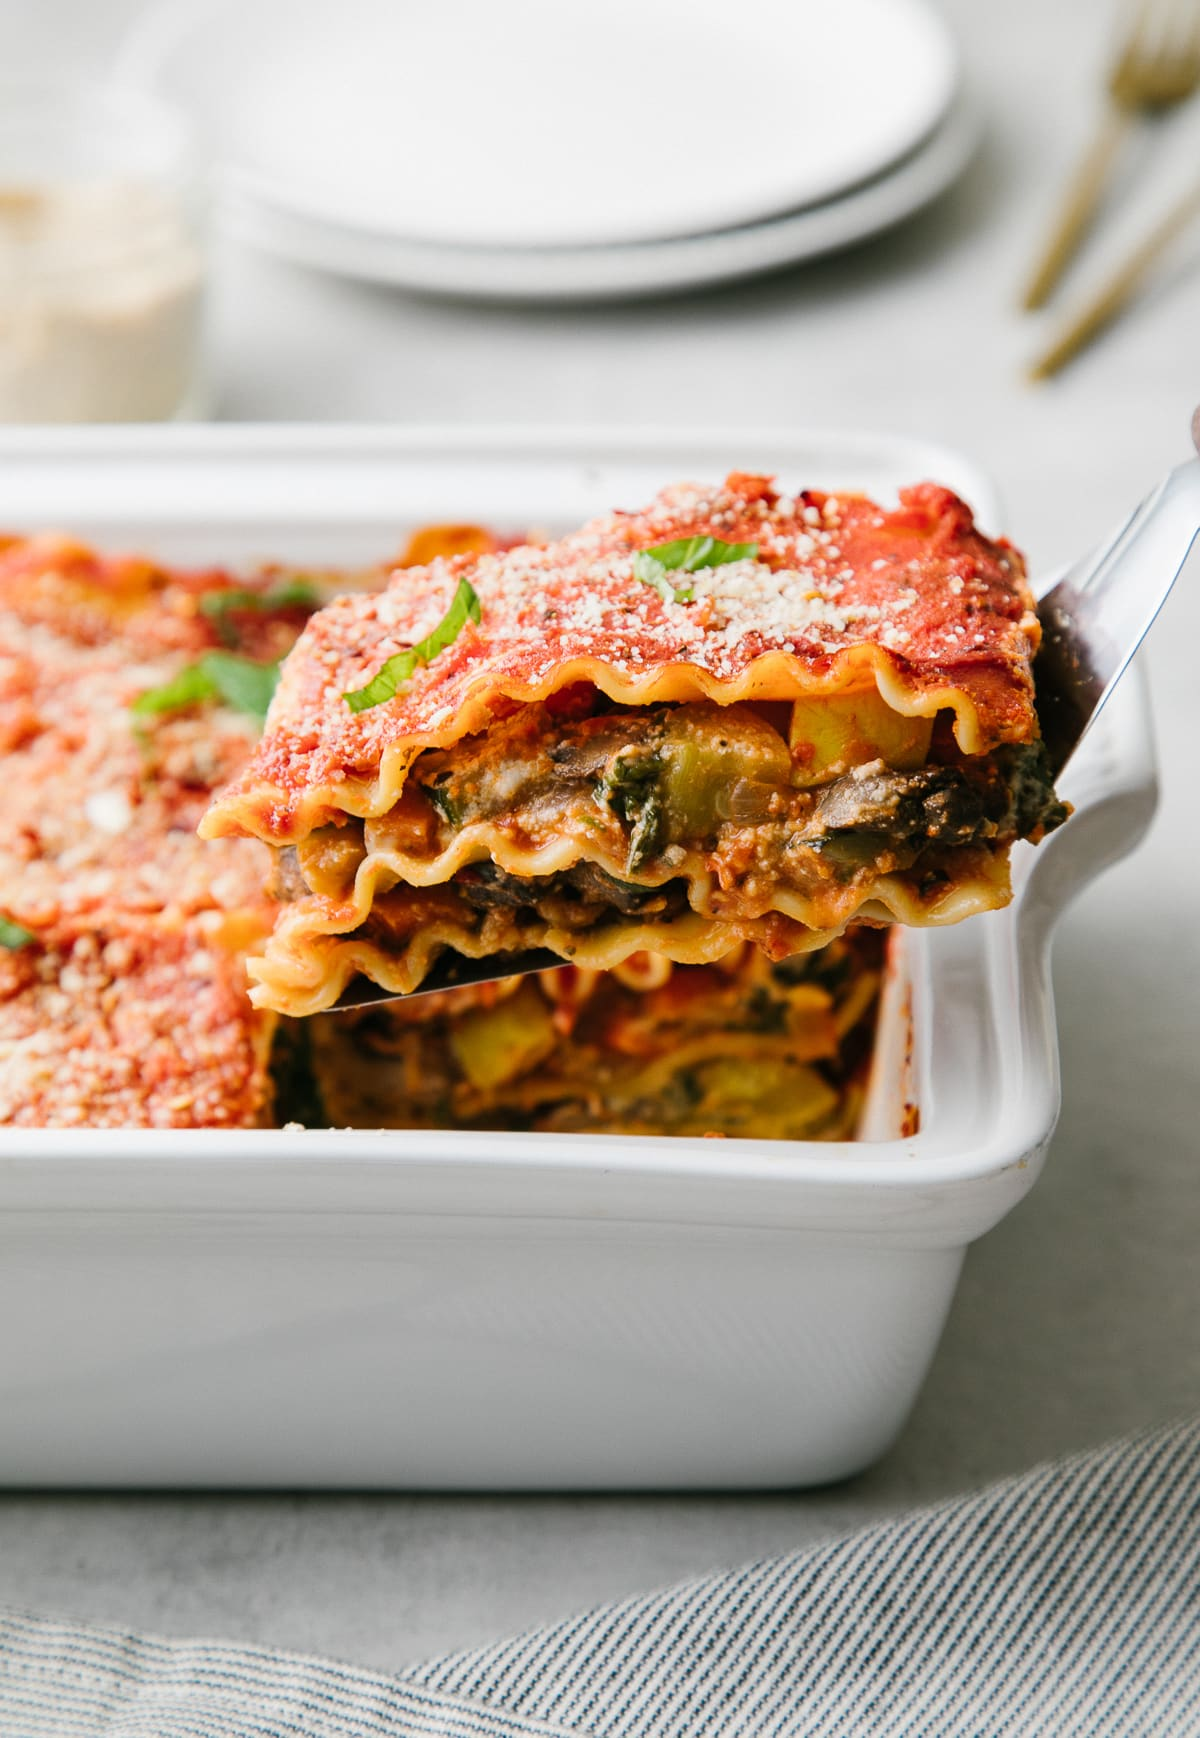 side angle view of sliced lasagna being taken from baking dish.